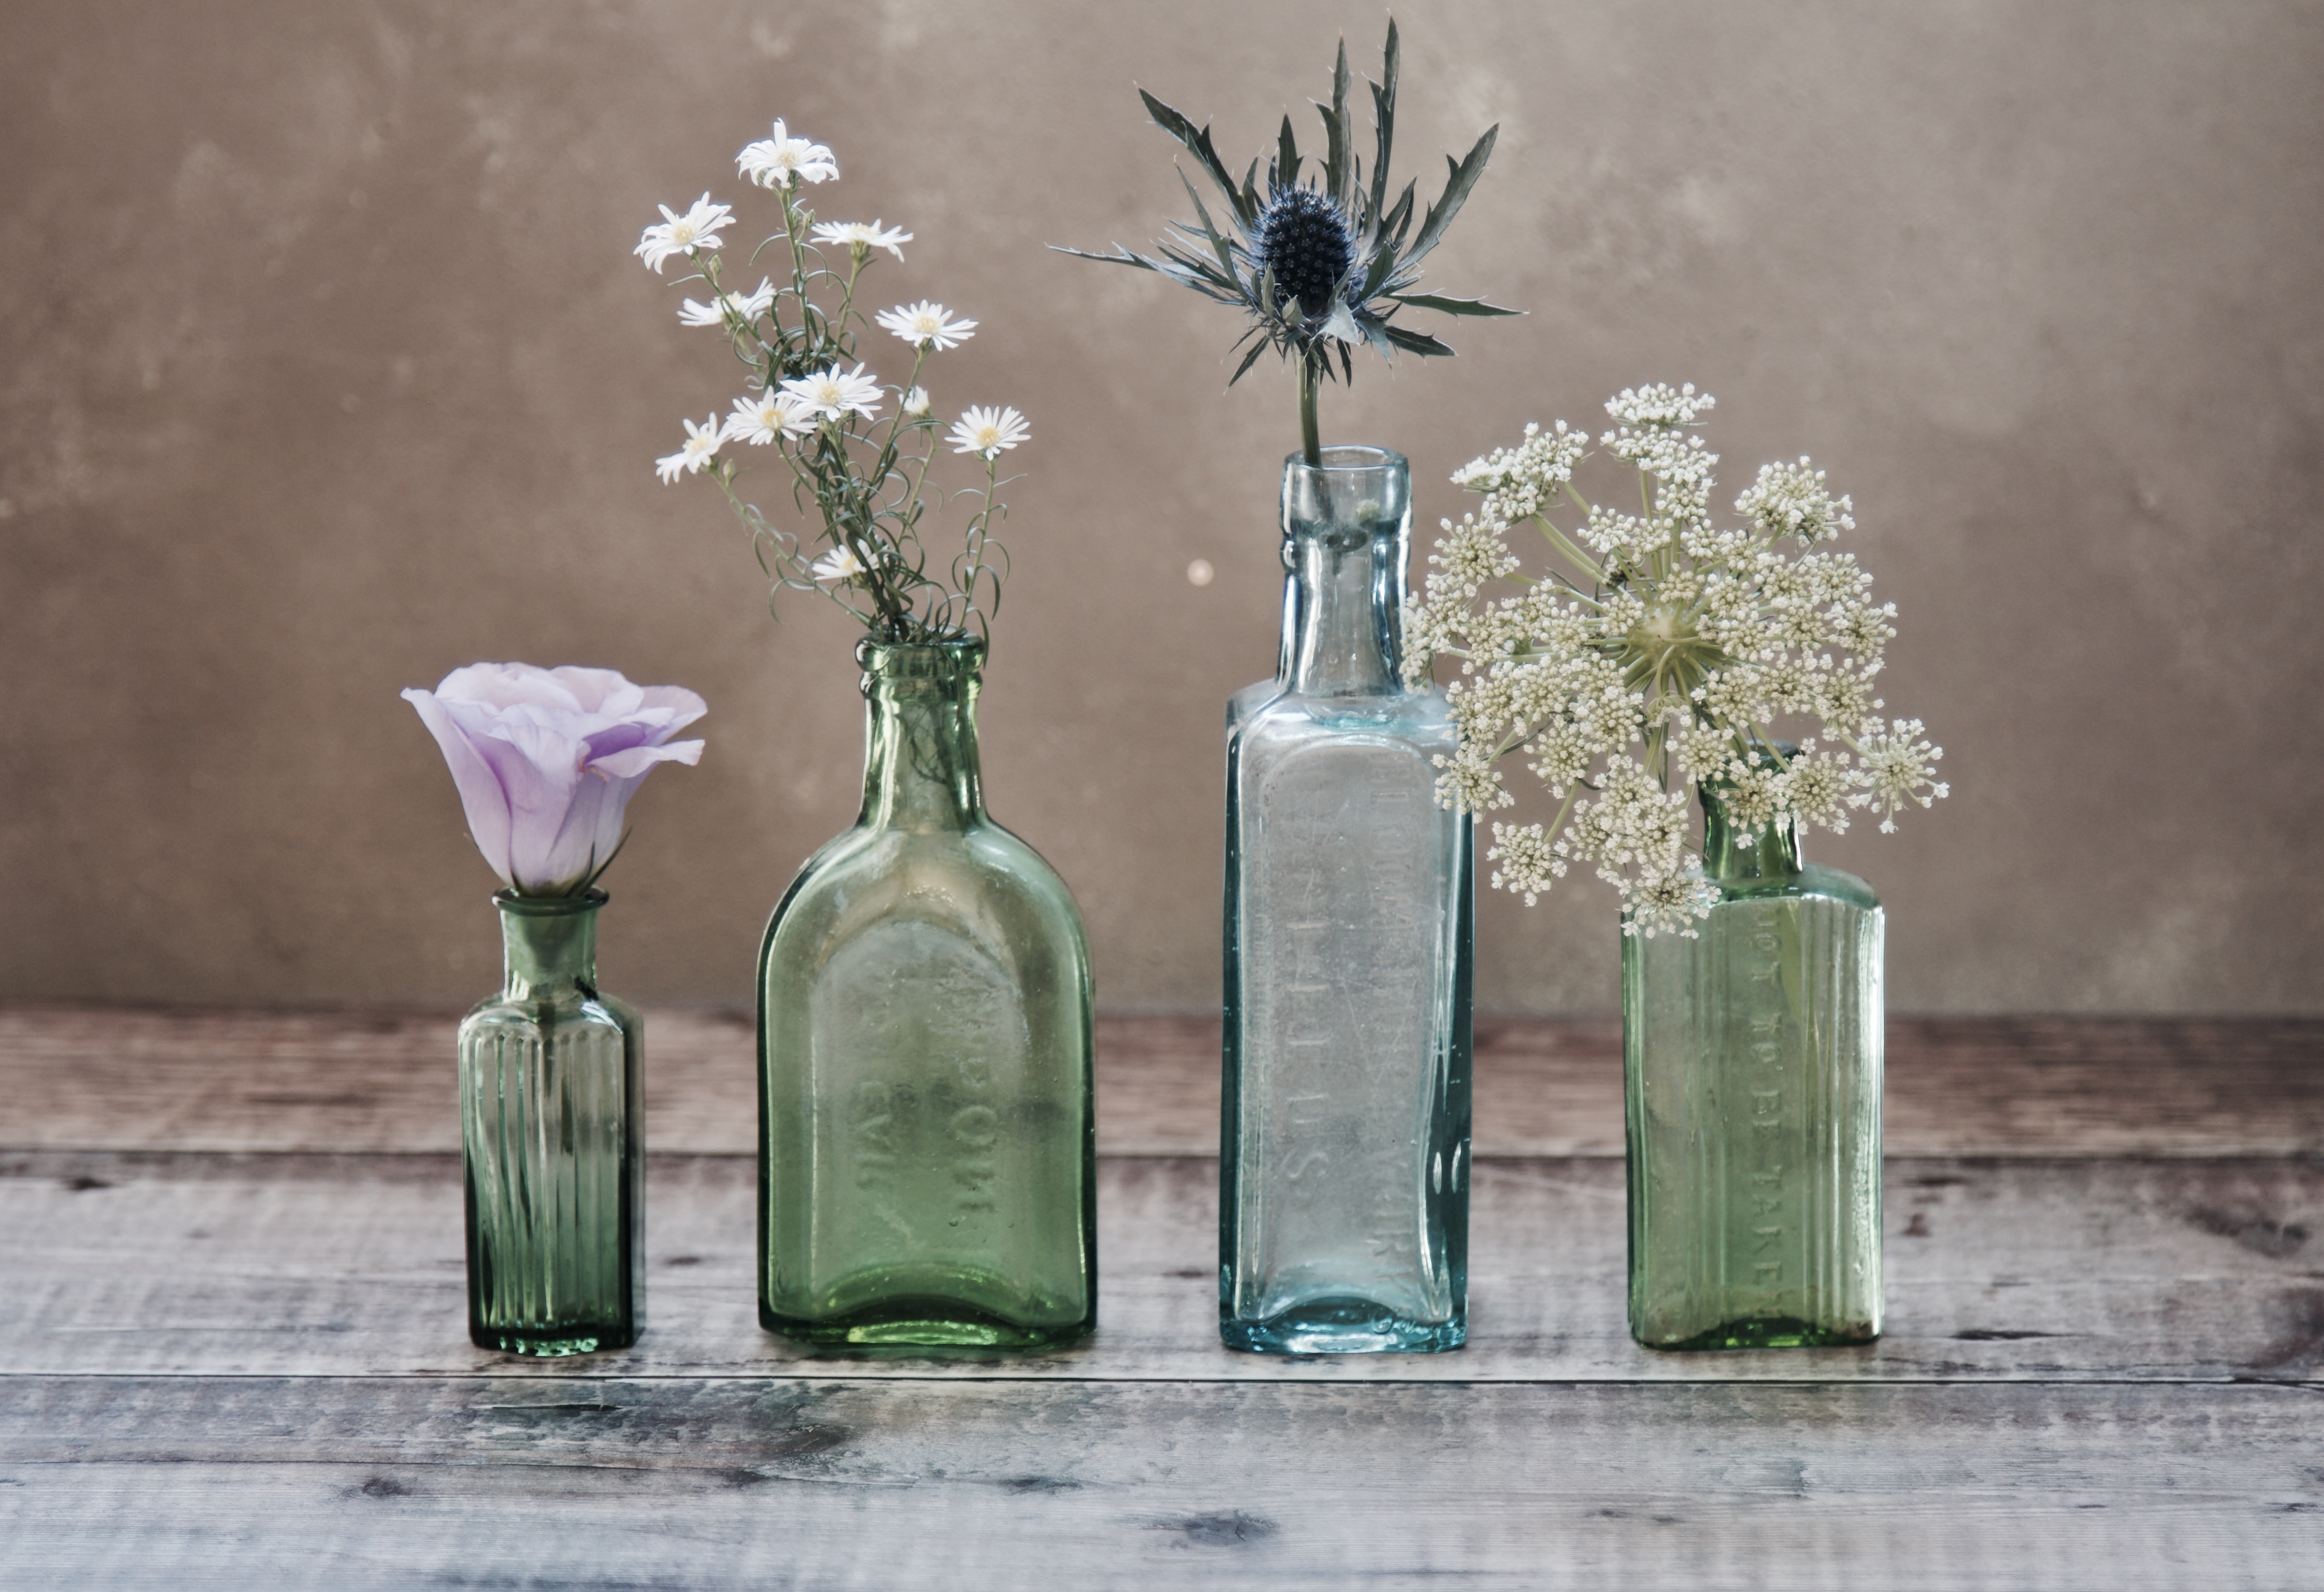 three green and one blue glass vases with flowers inside